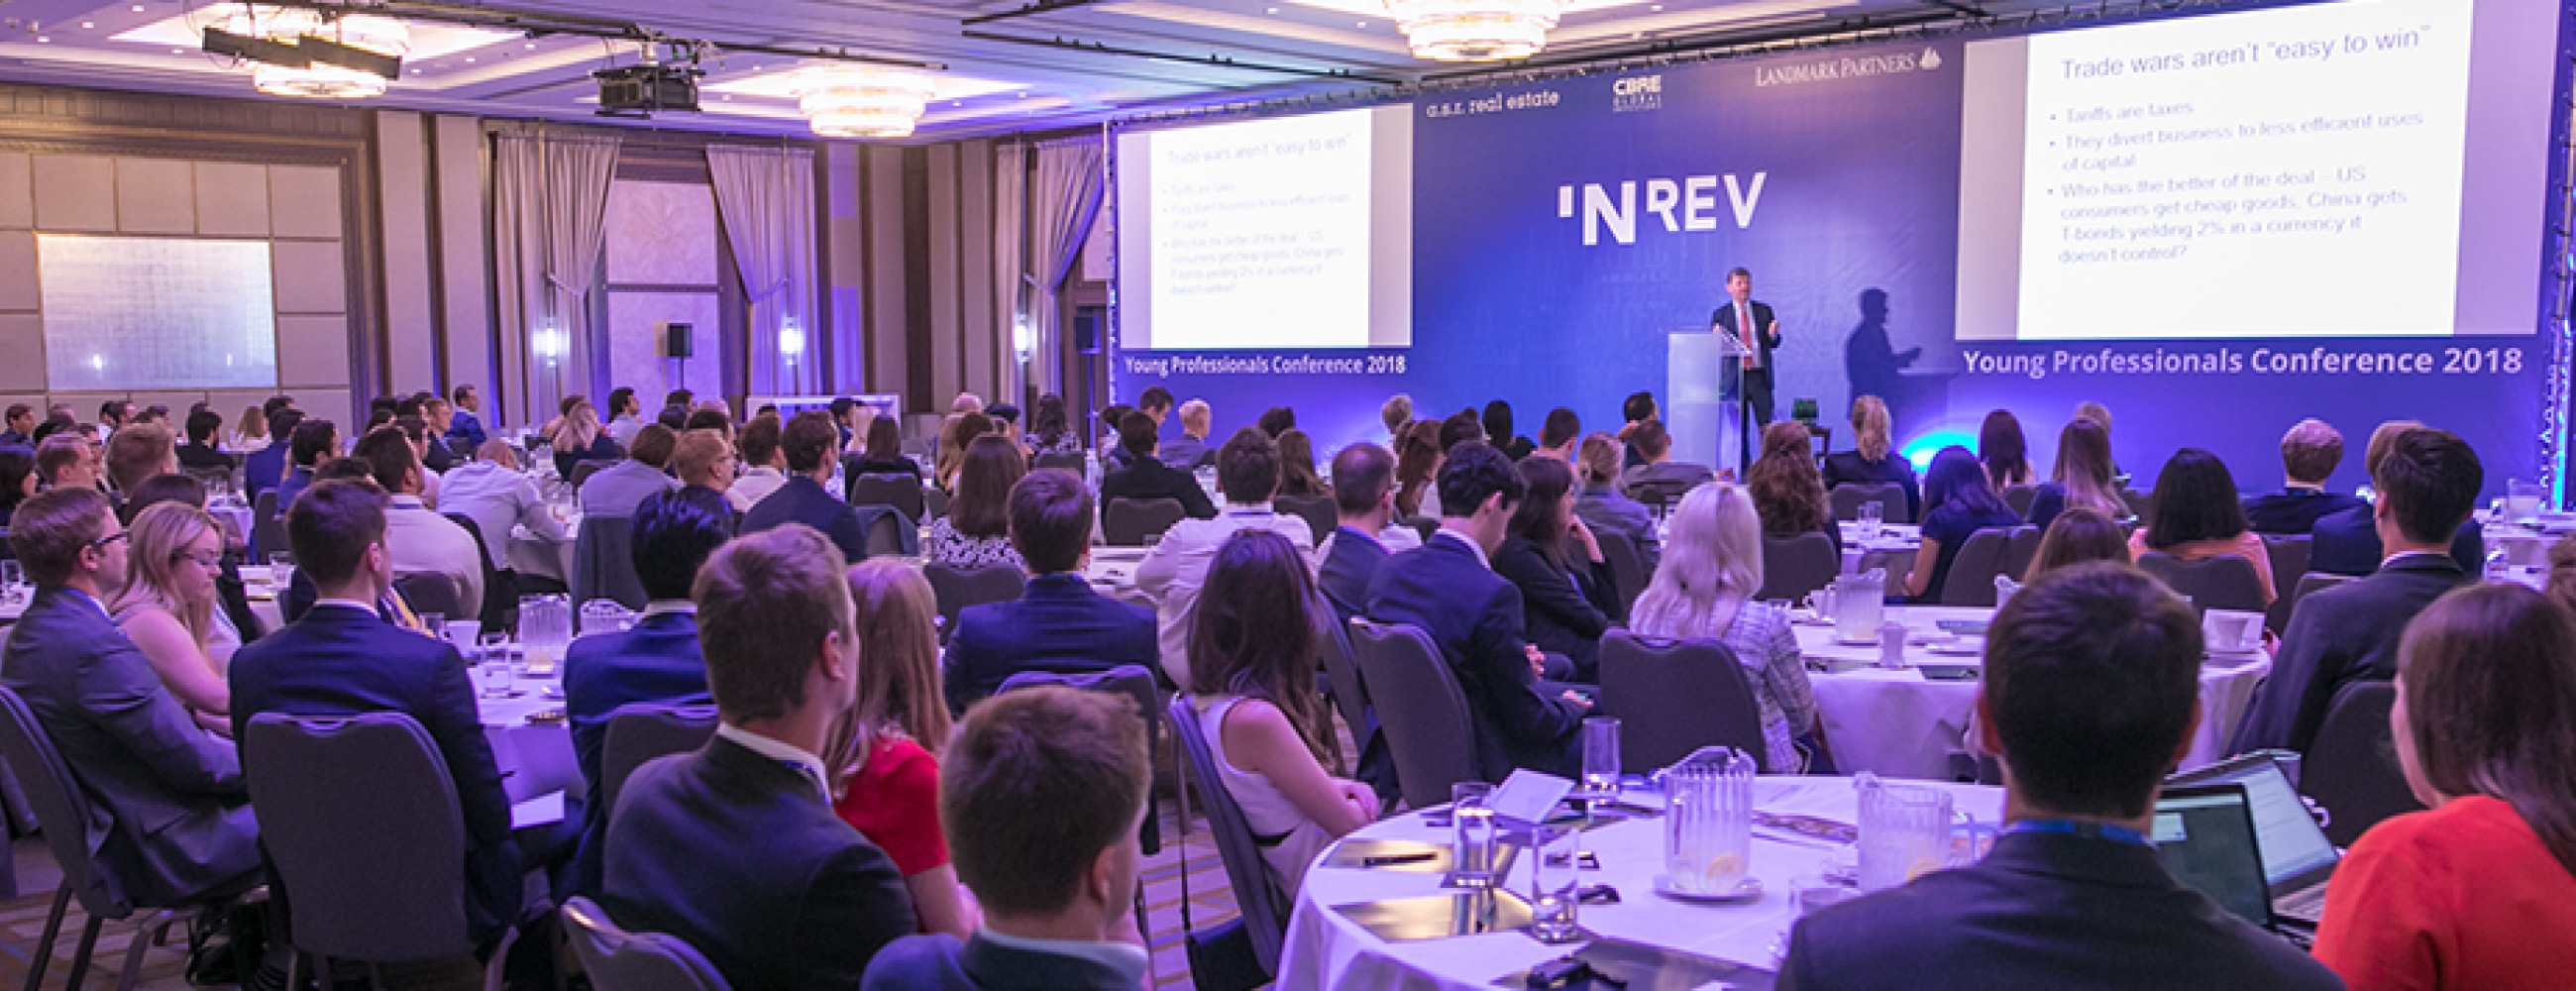 INREV Young Professionals Conference Sponsorship